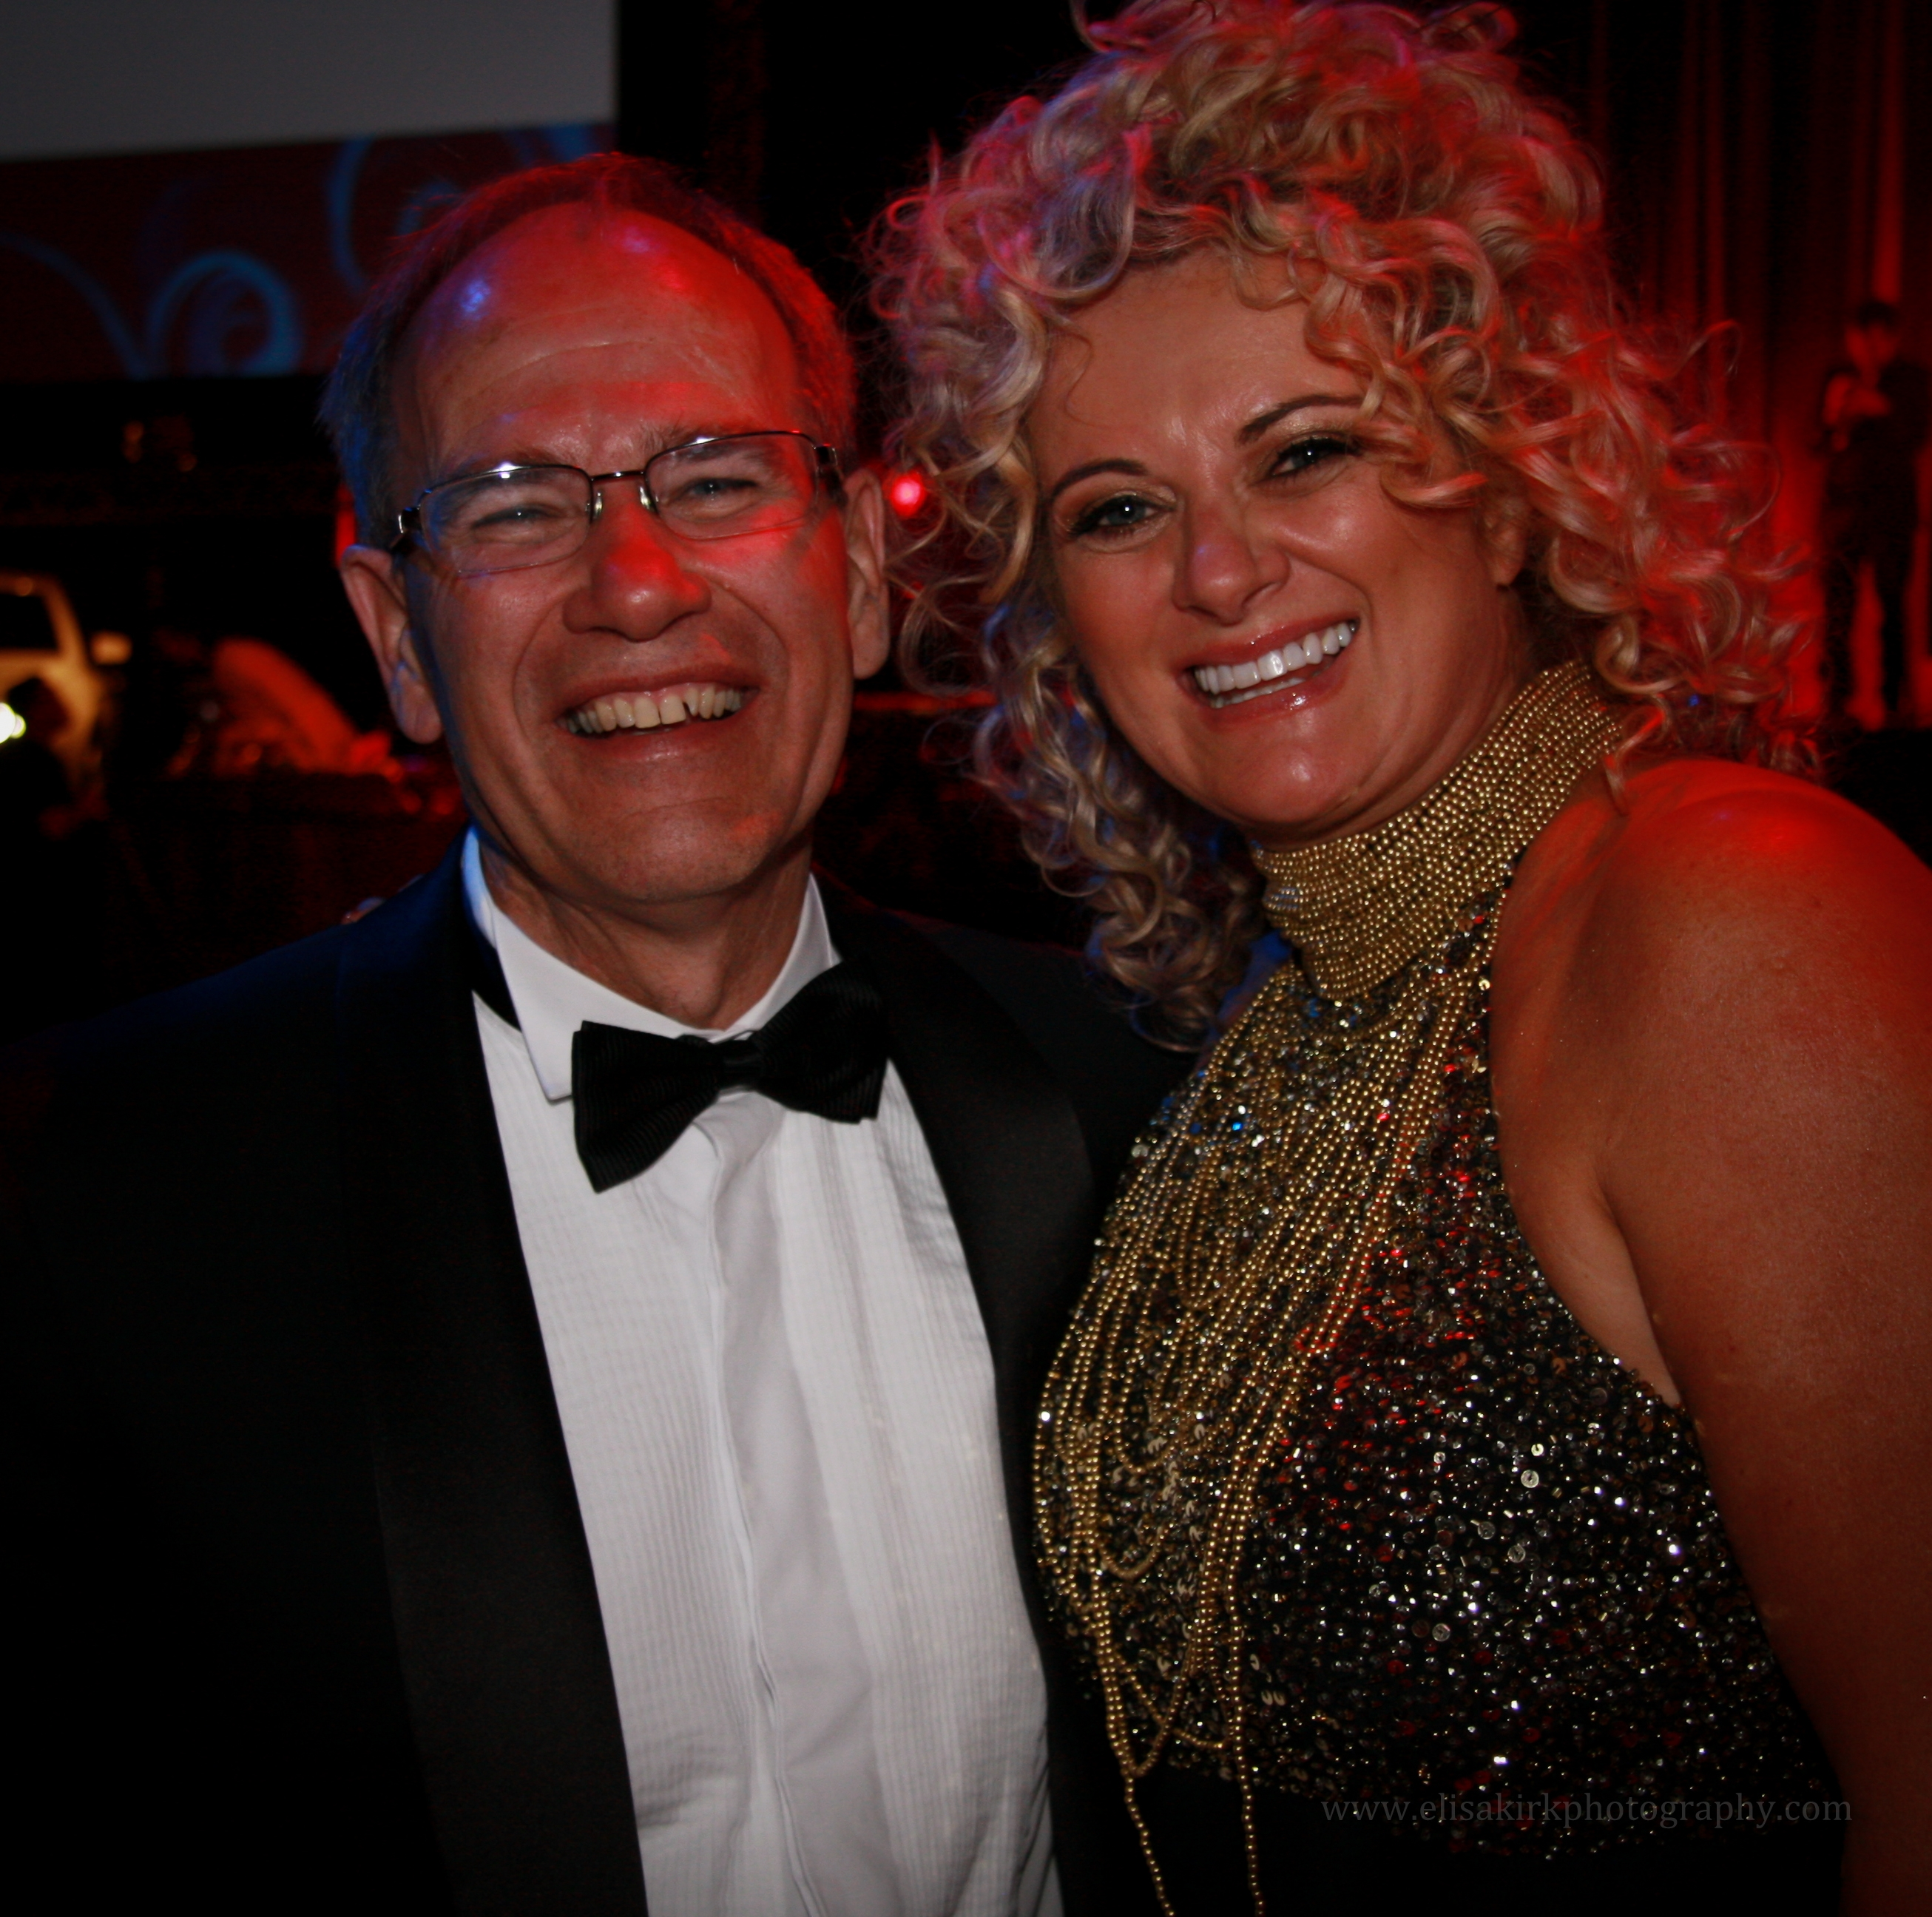 Auckland Mayor Len Brown with his wife